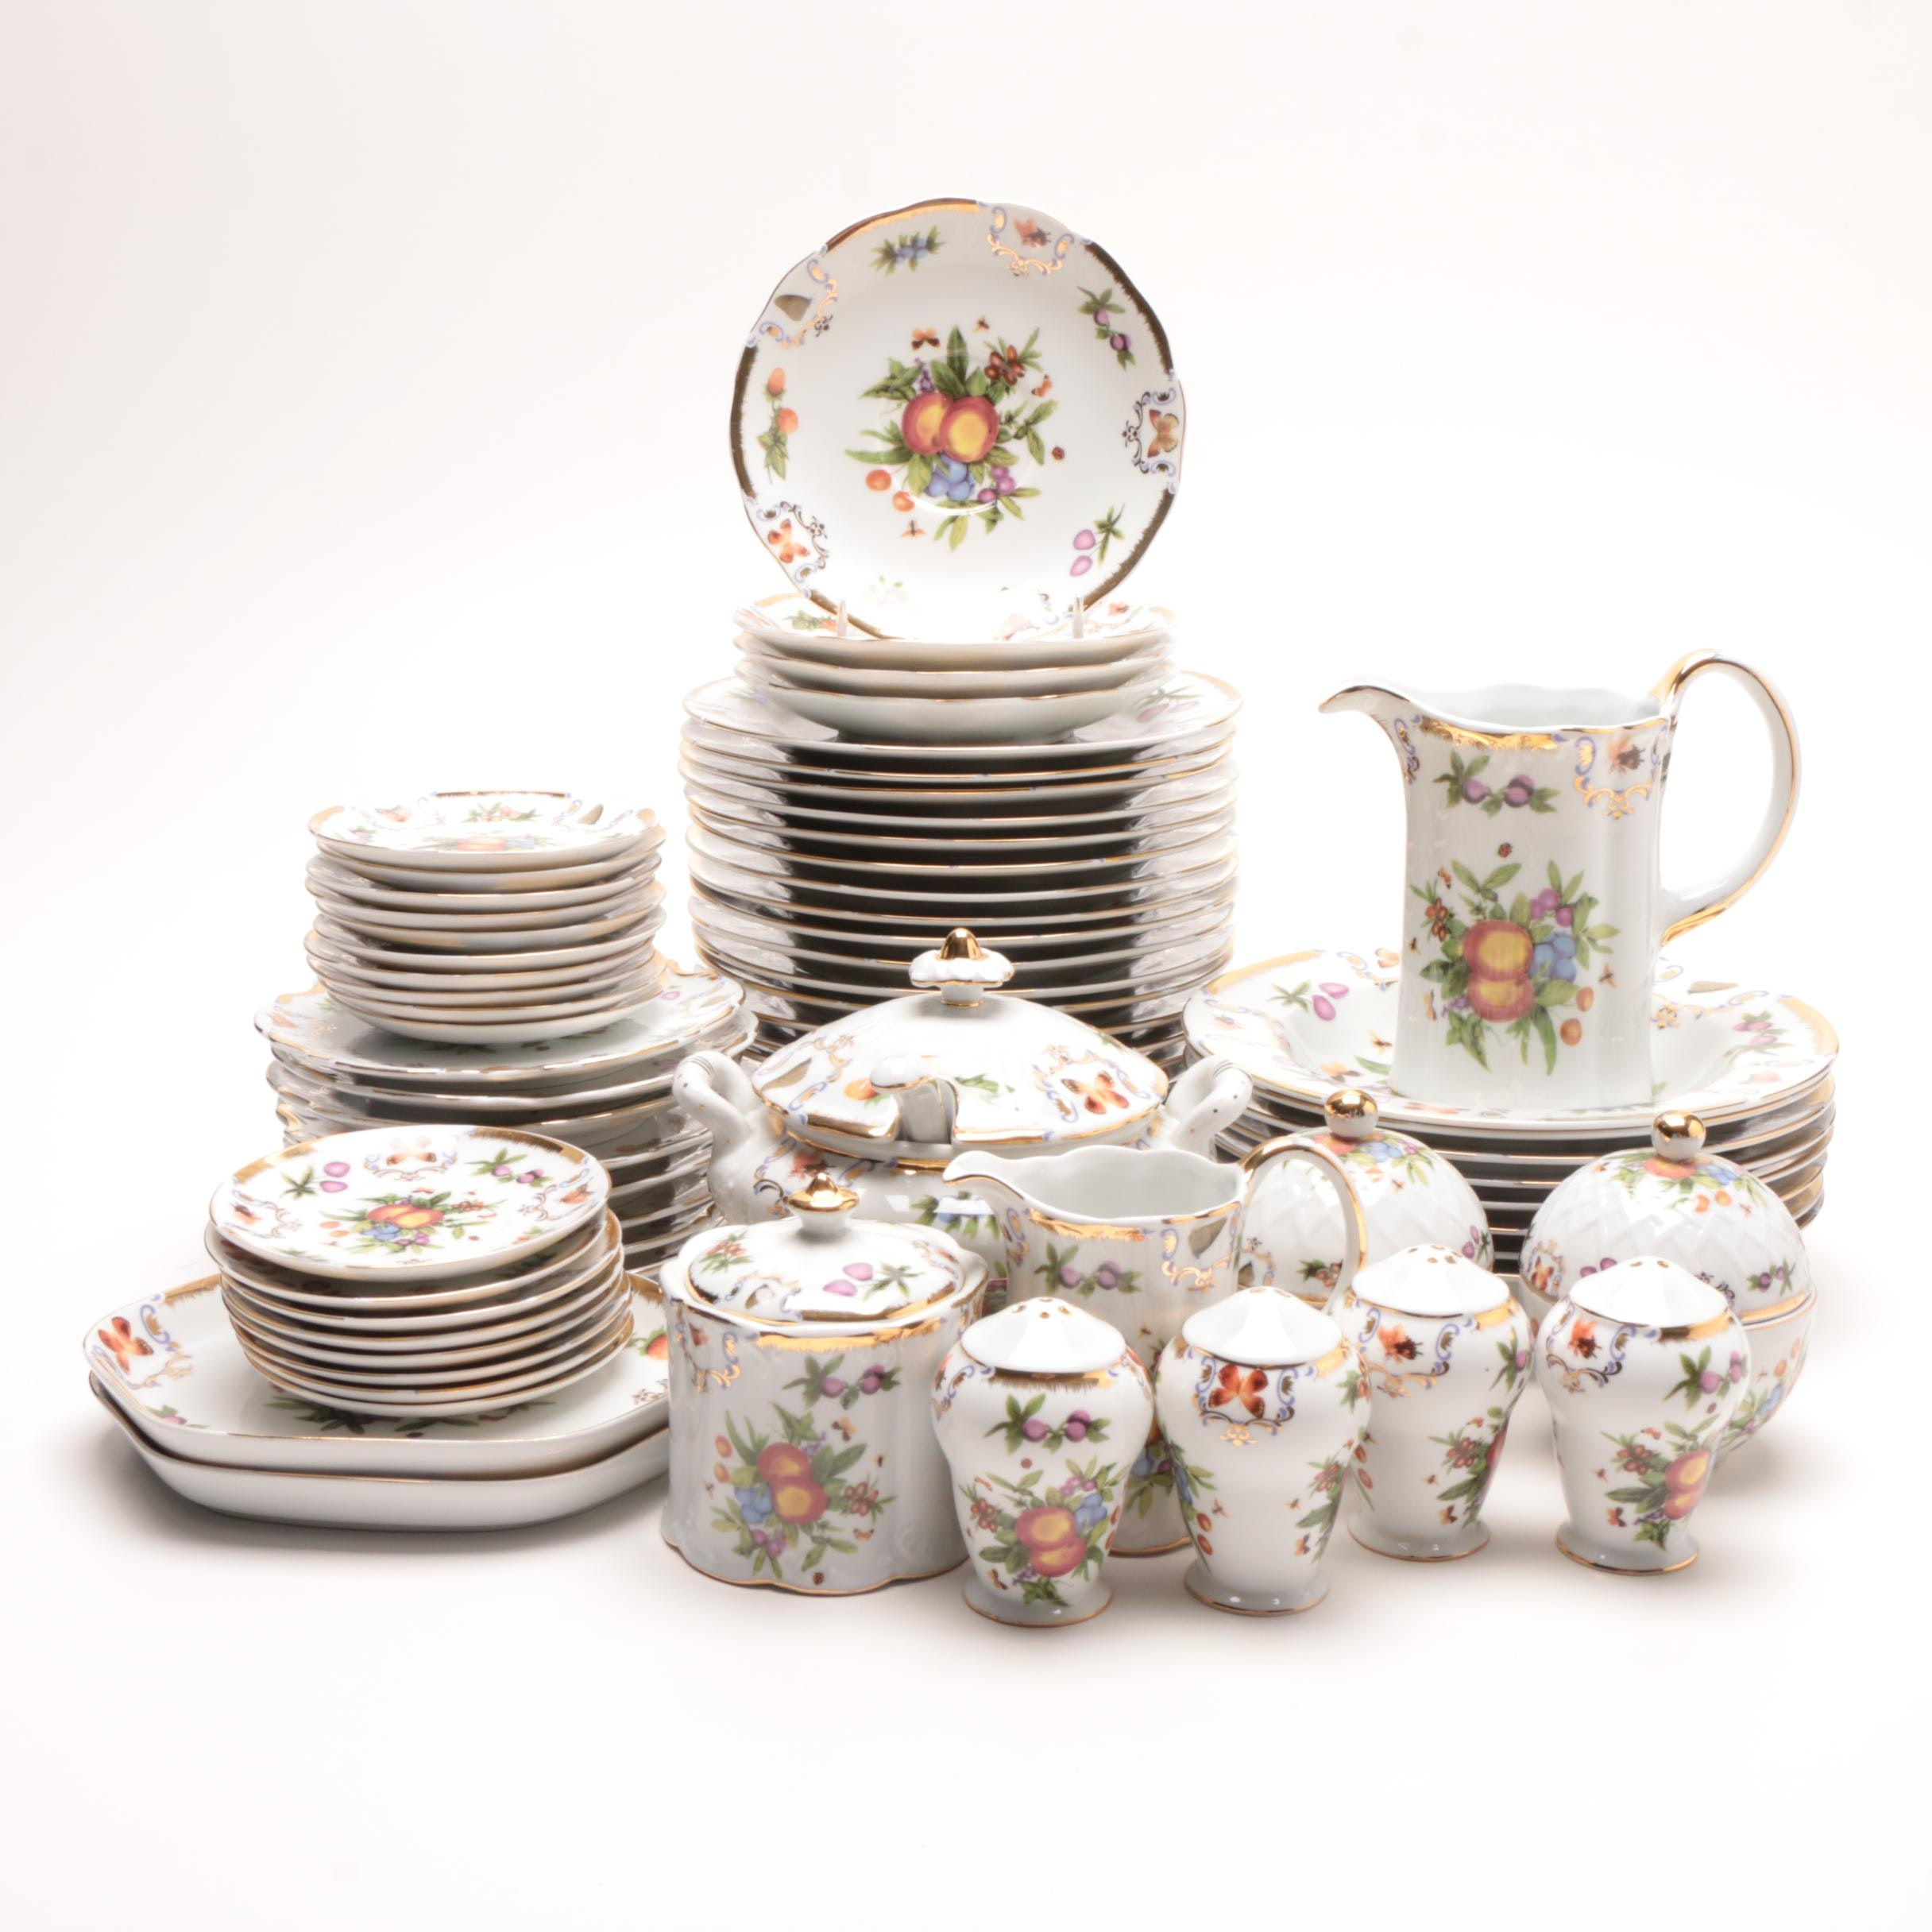 I. Godinger & Co. Fruit Themed Porcelain Dinnerware